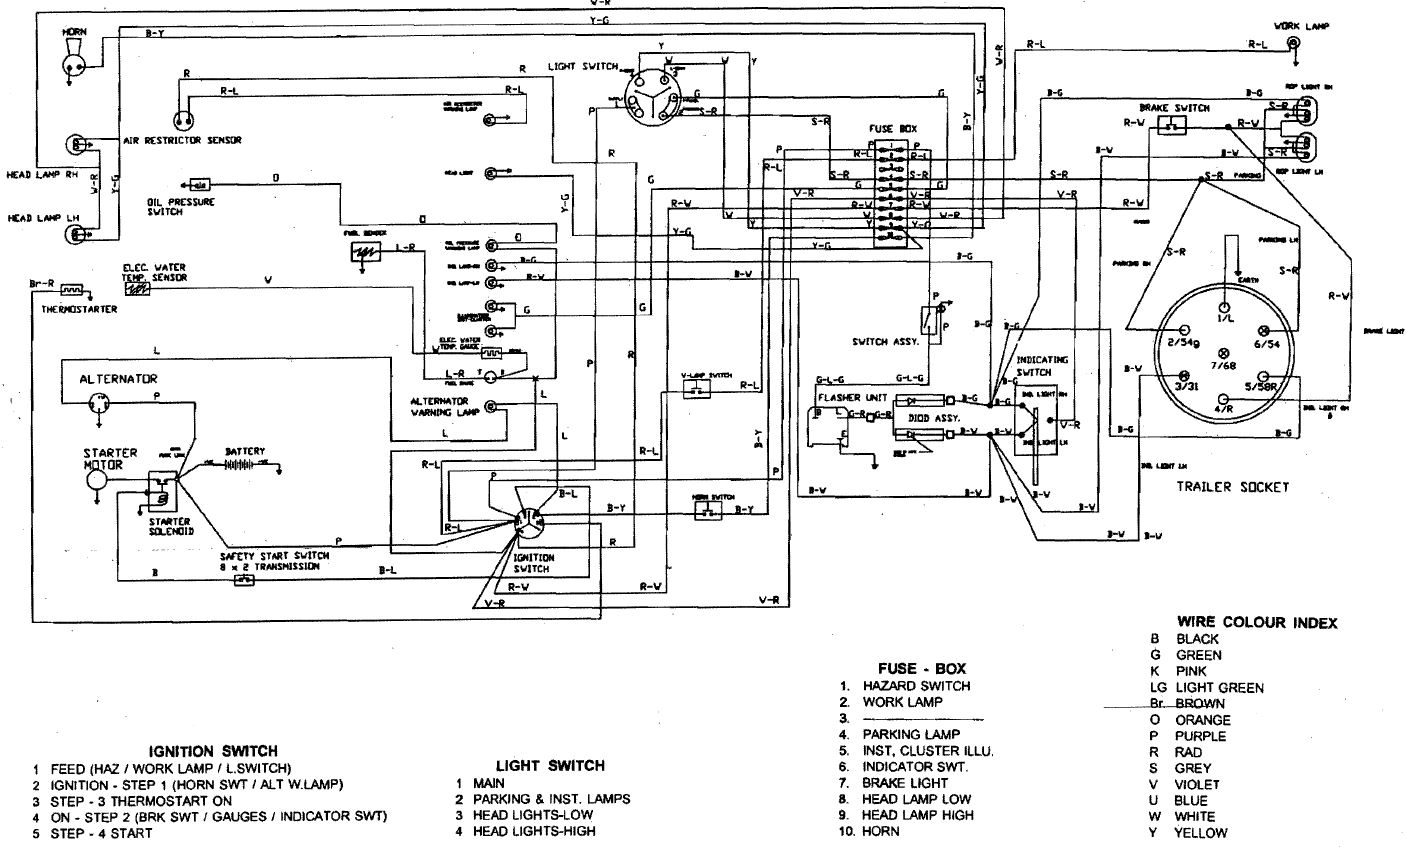 20158463319_b82d524c3d_o ignition switch wiring diagram john deere lawn tractor wiring diagram at crackthecode.co